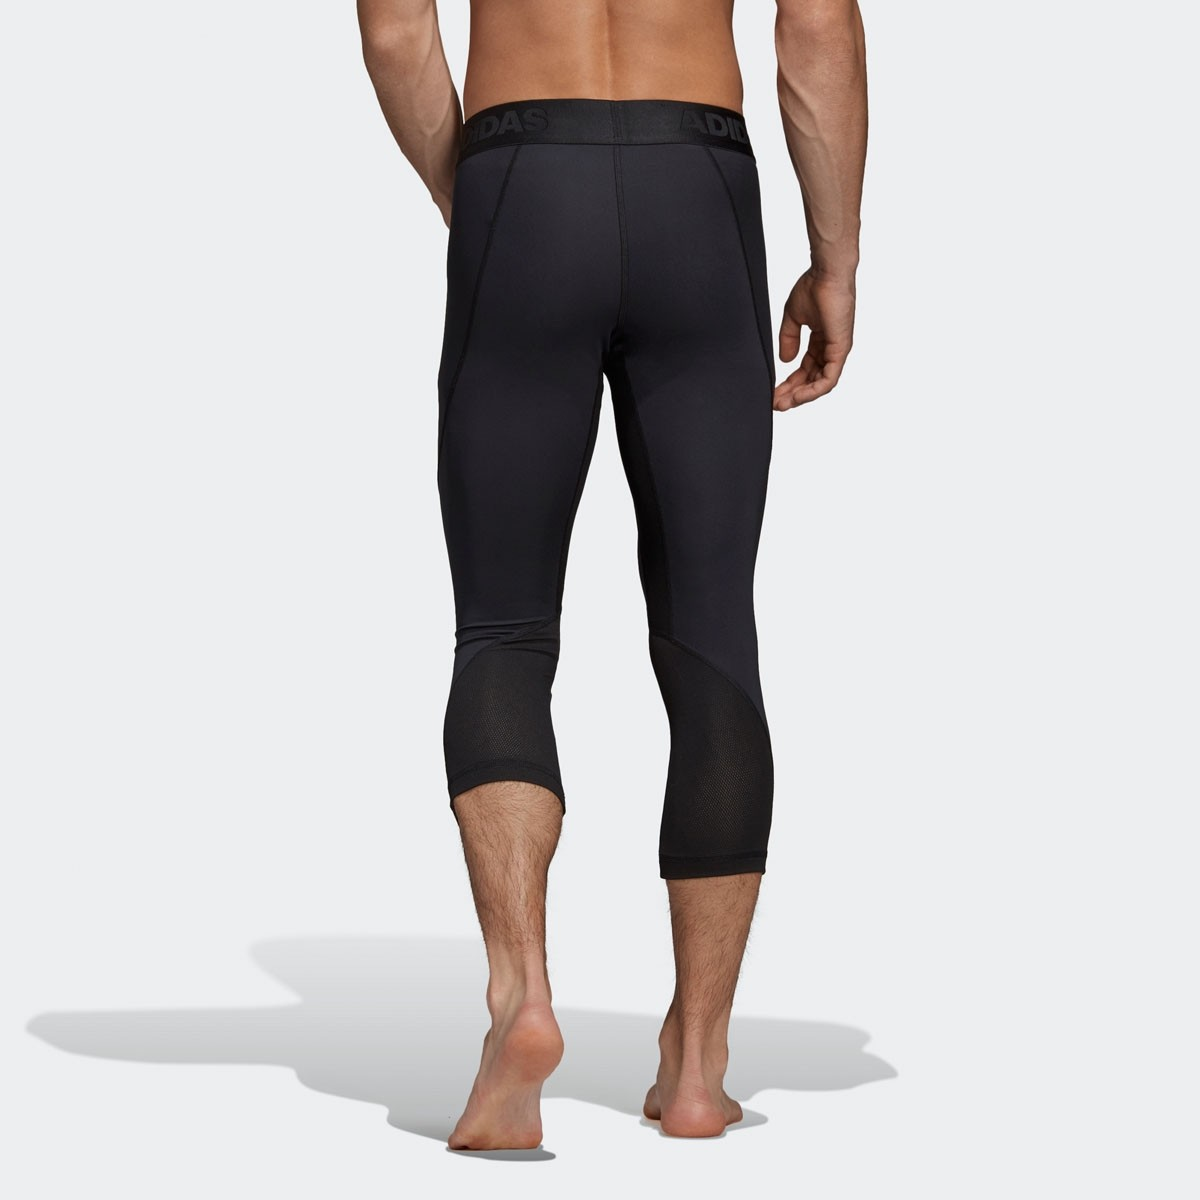 ADIDAS Tight 3/4 'Black' CF7331